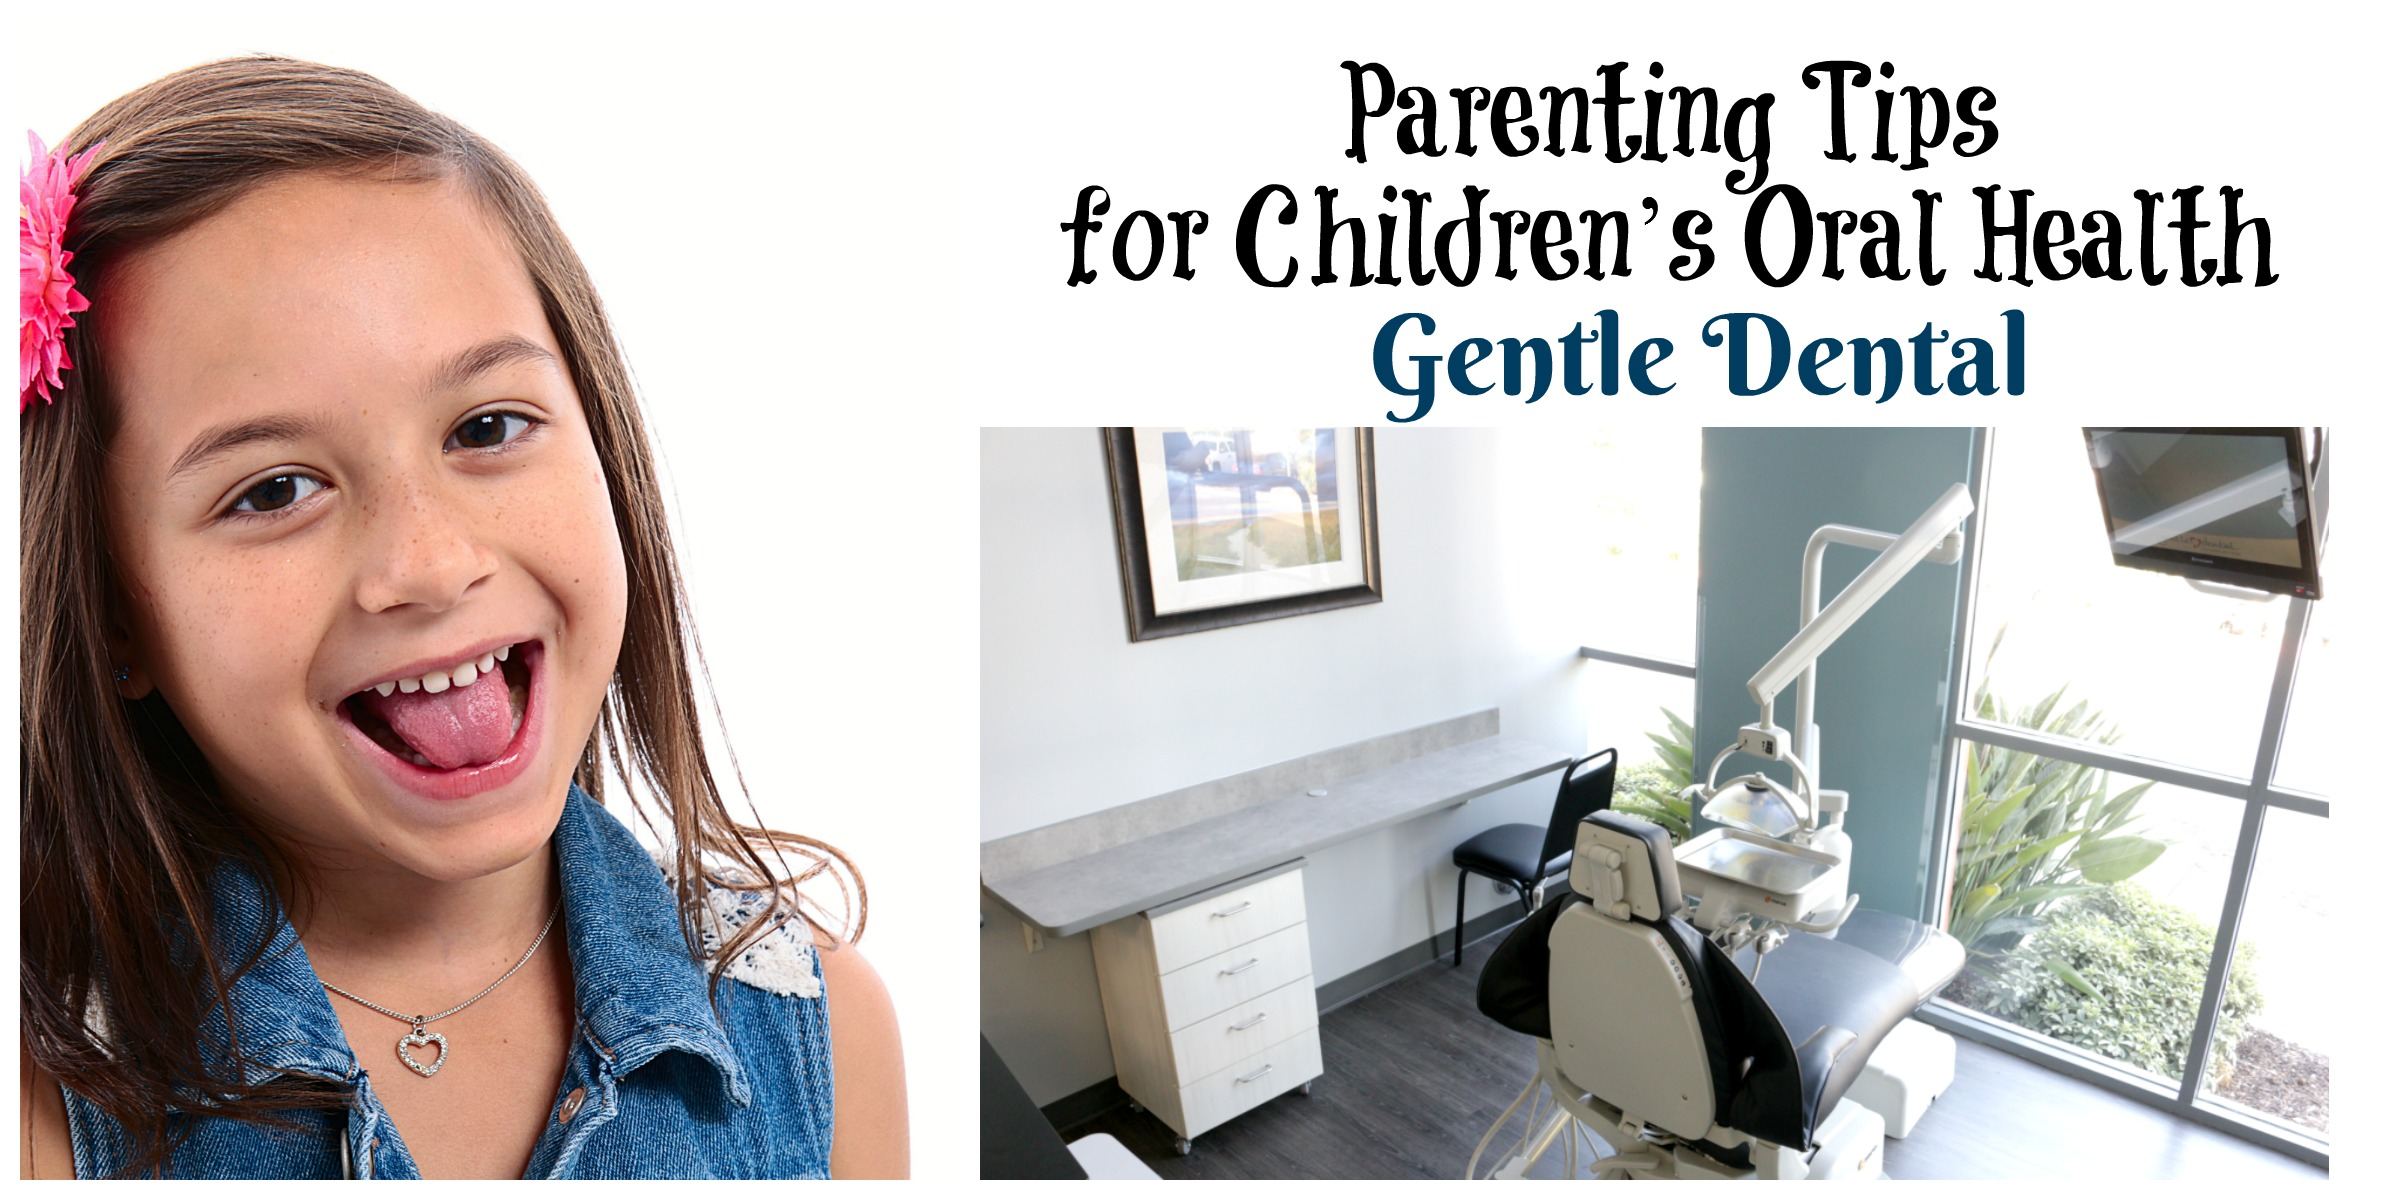 Parenting Tips for Children's Oral Health Gentle Dental